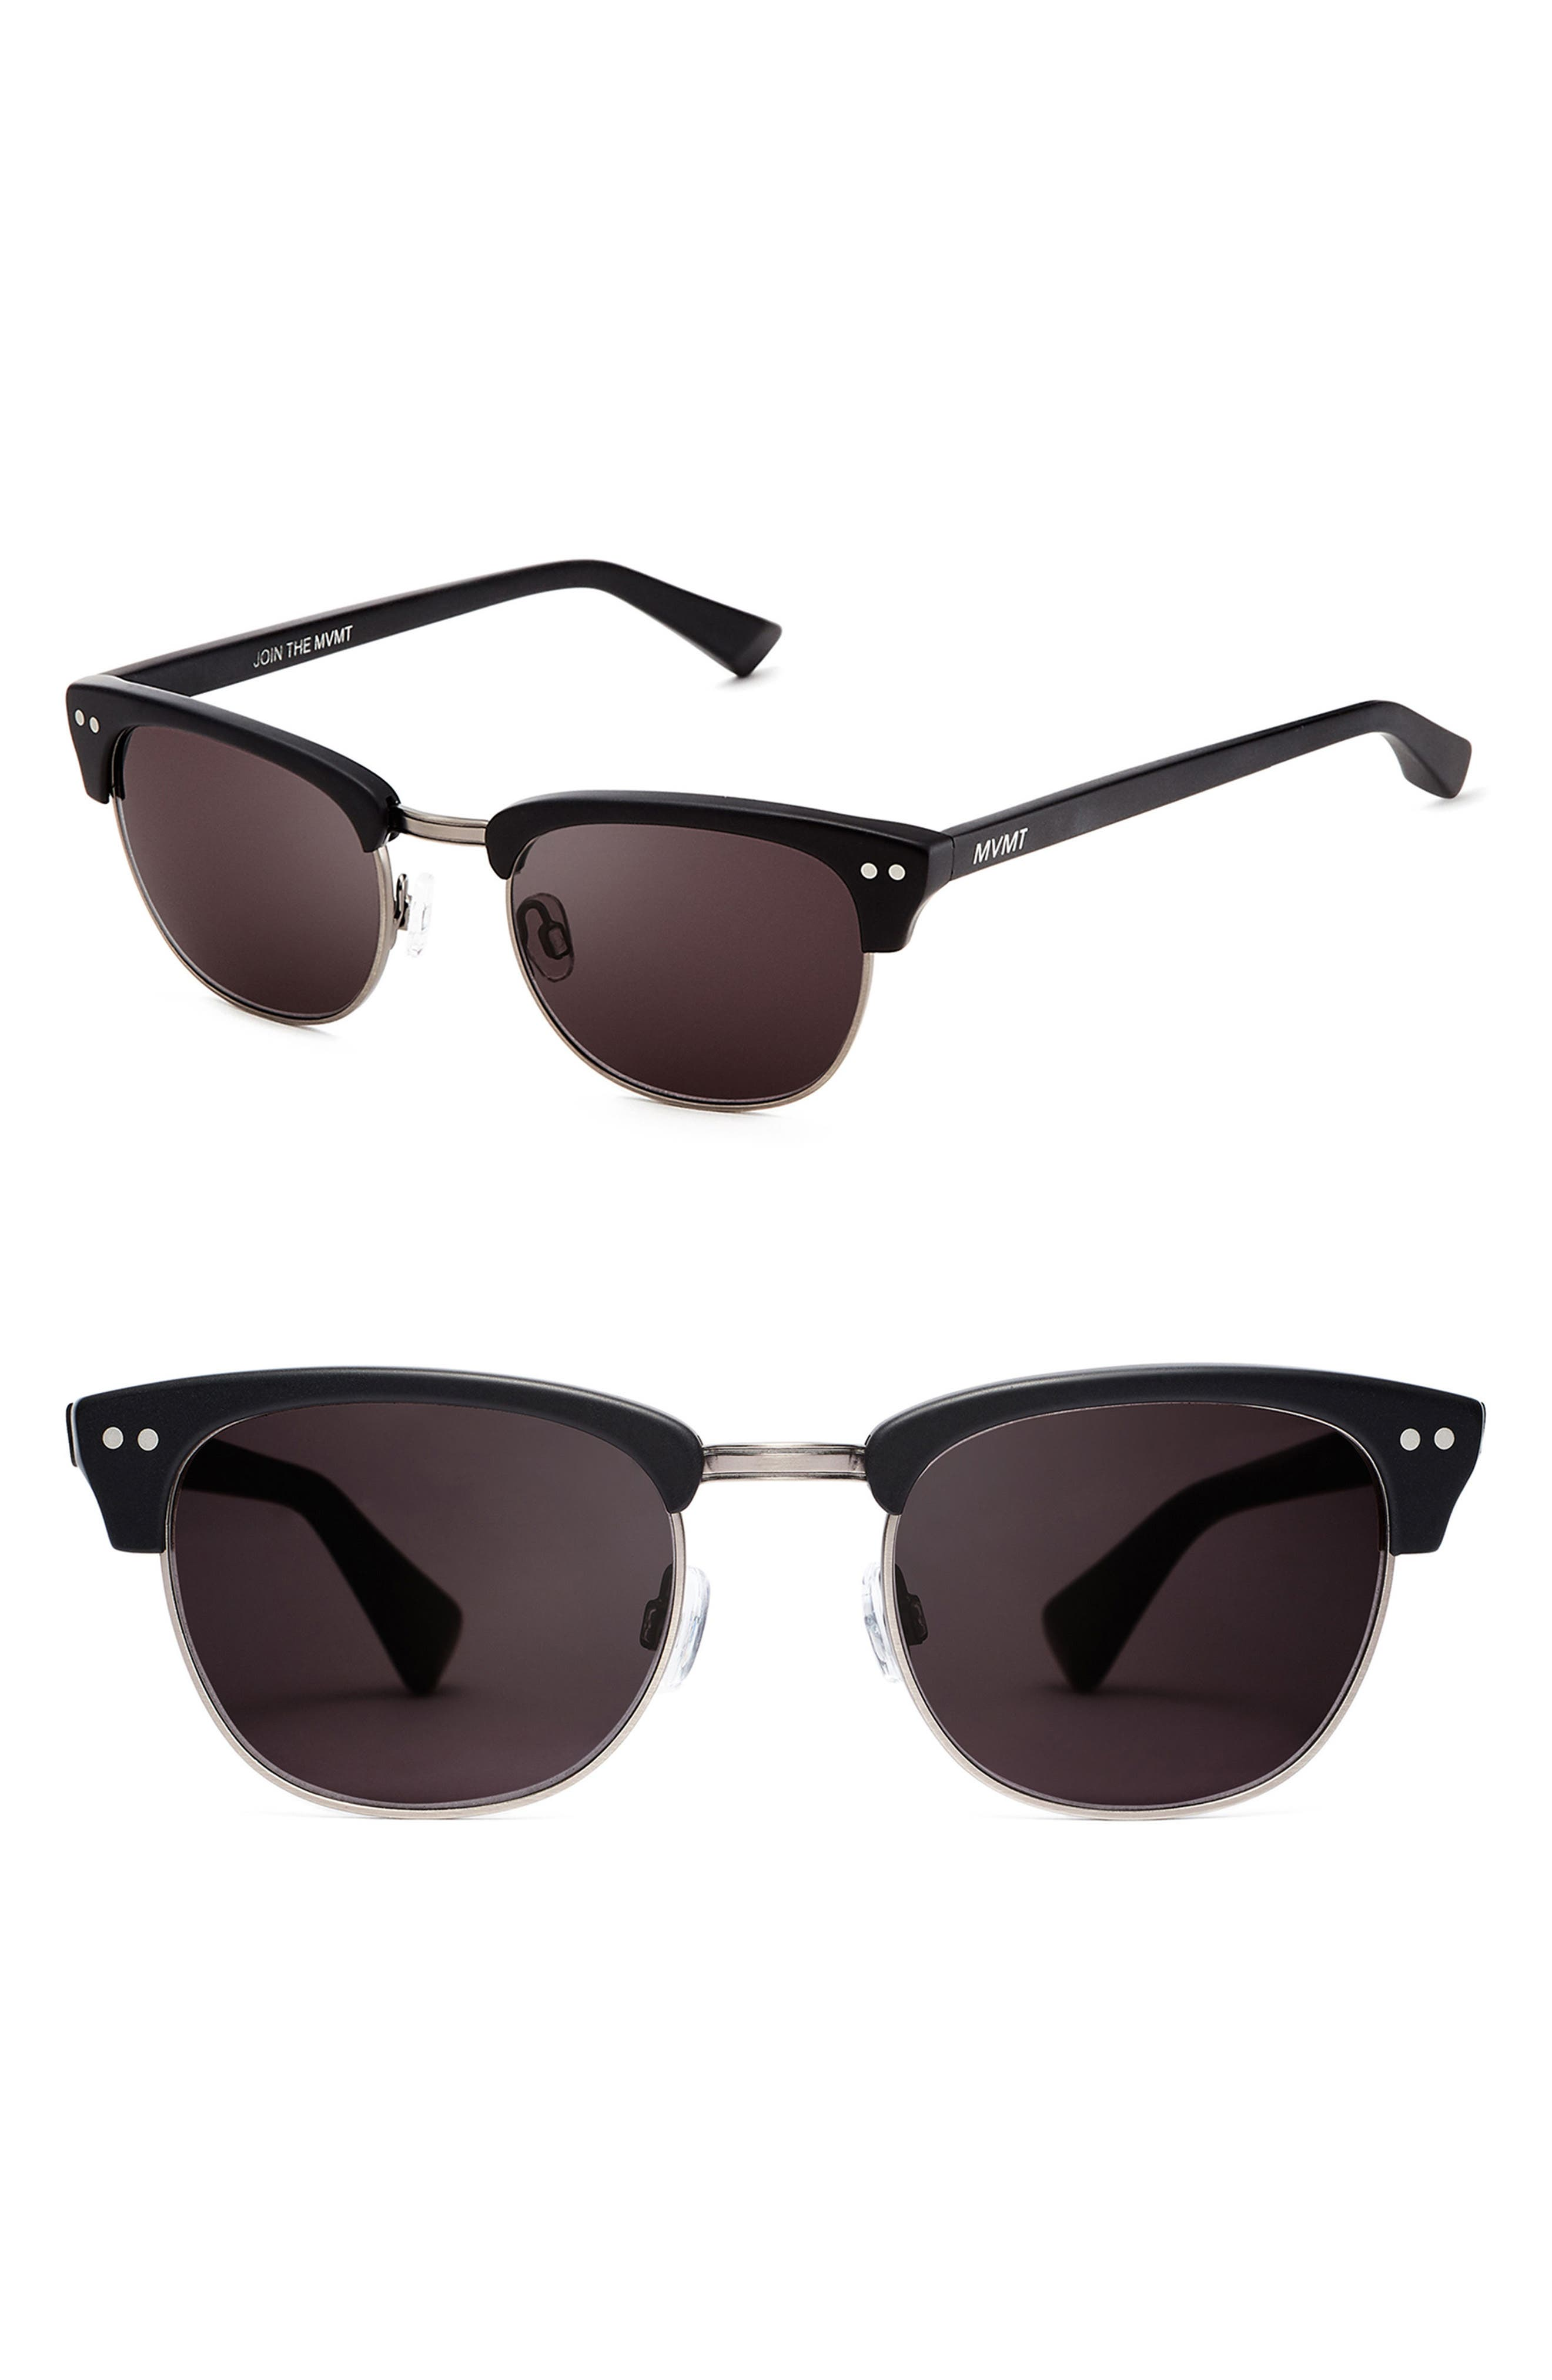 Legend 49mm Polarized Sunglasses,                         Main,                         color, MATTE BLACK